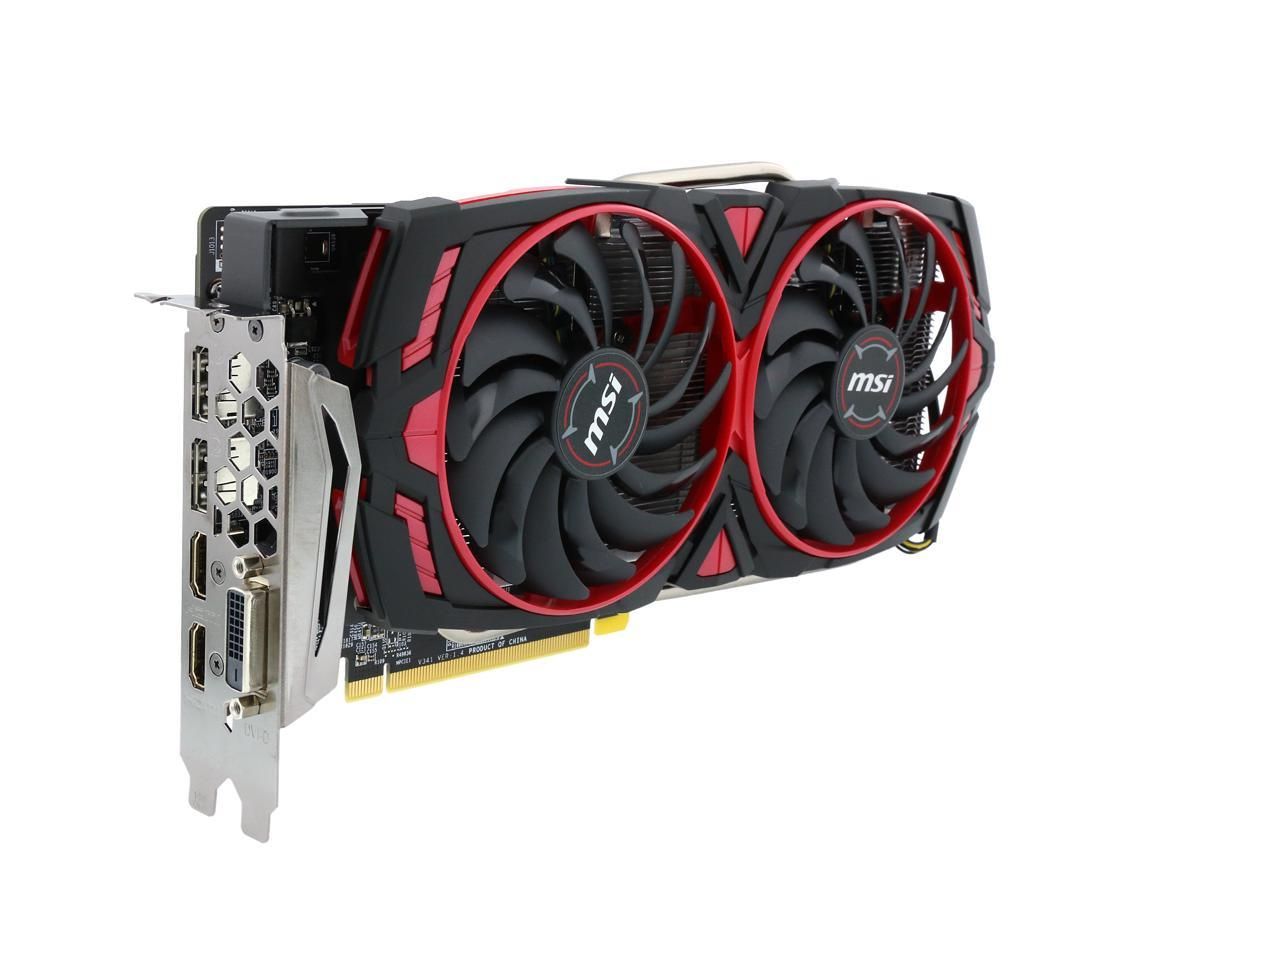 MSI Radeon ARMOR MK2 8G OC 8GB 256-Bit GDDR5 PCI Video Card